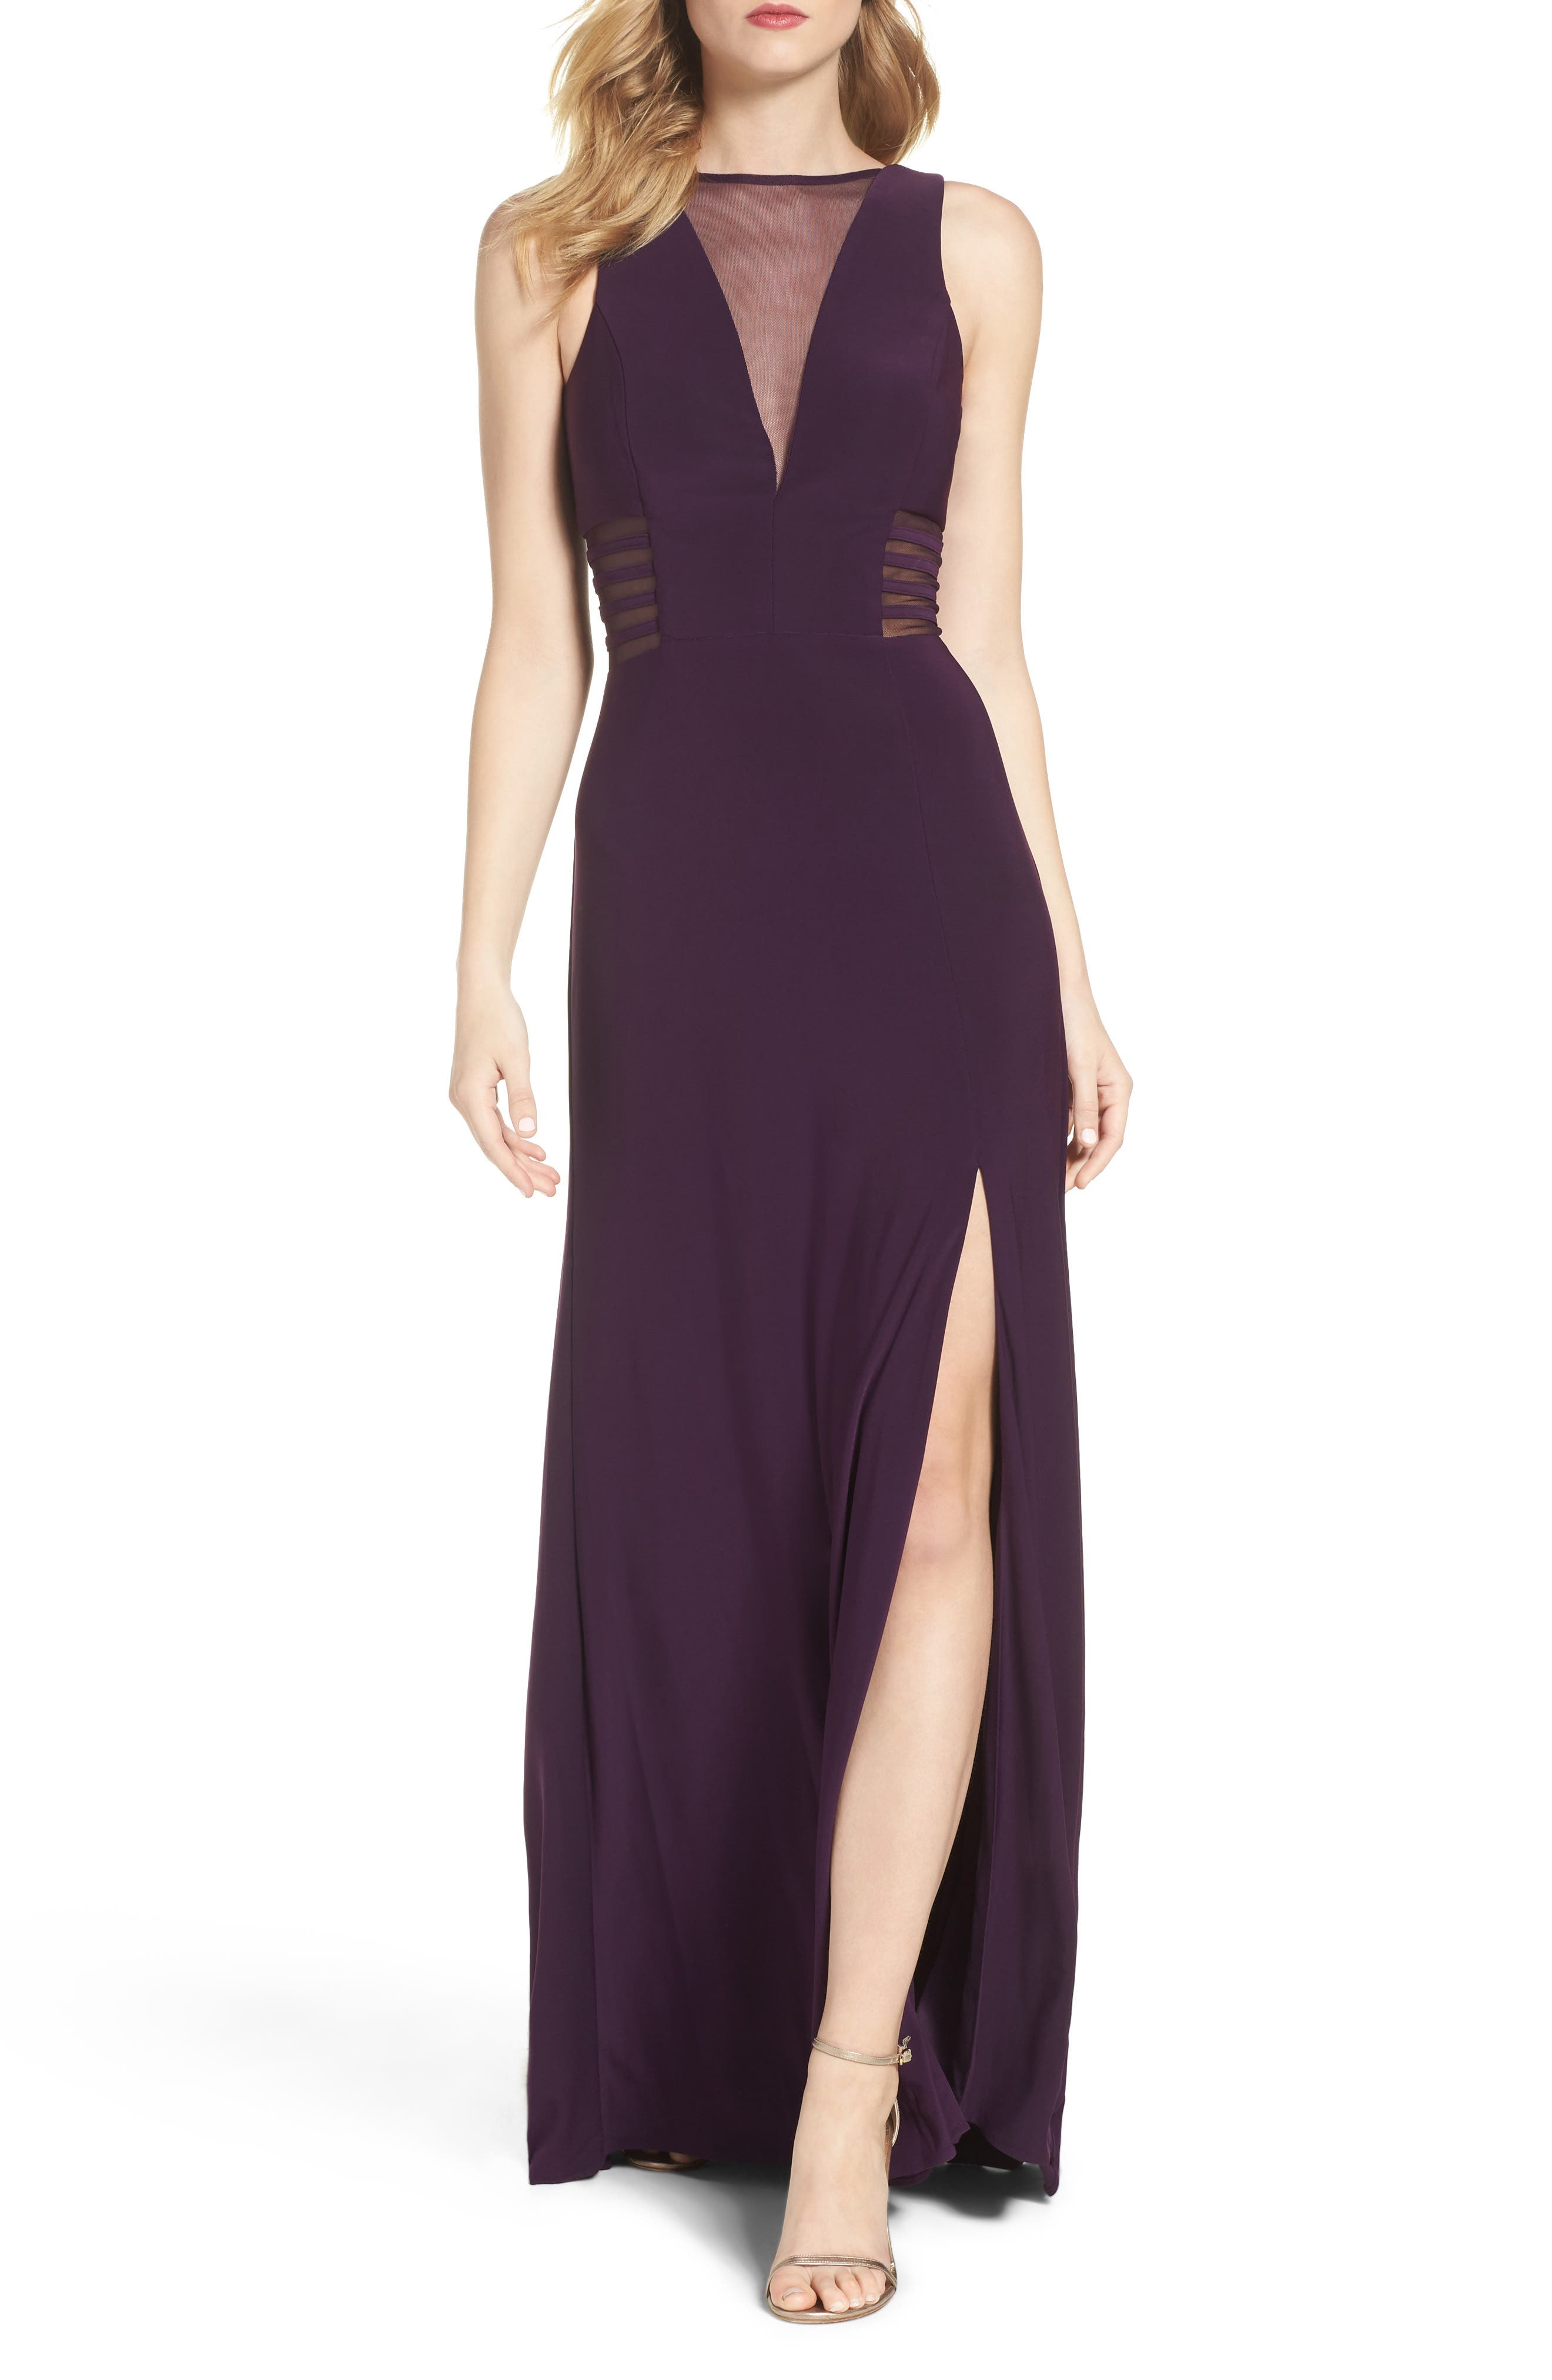 Morgan & Co. Illusion Gown, /10 - Purple